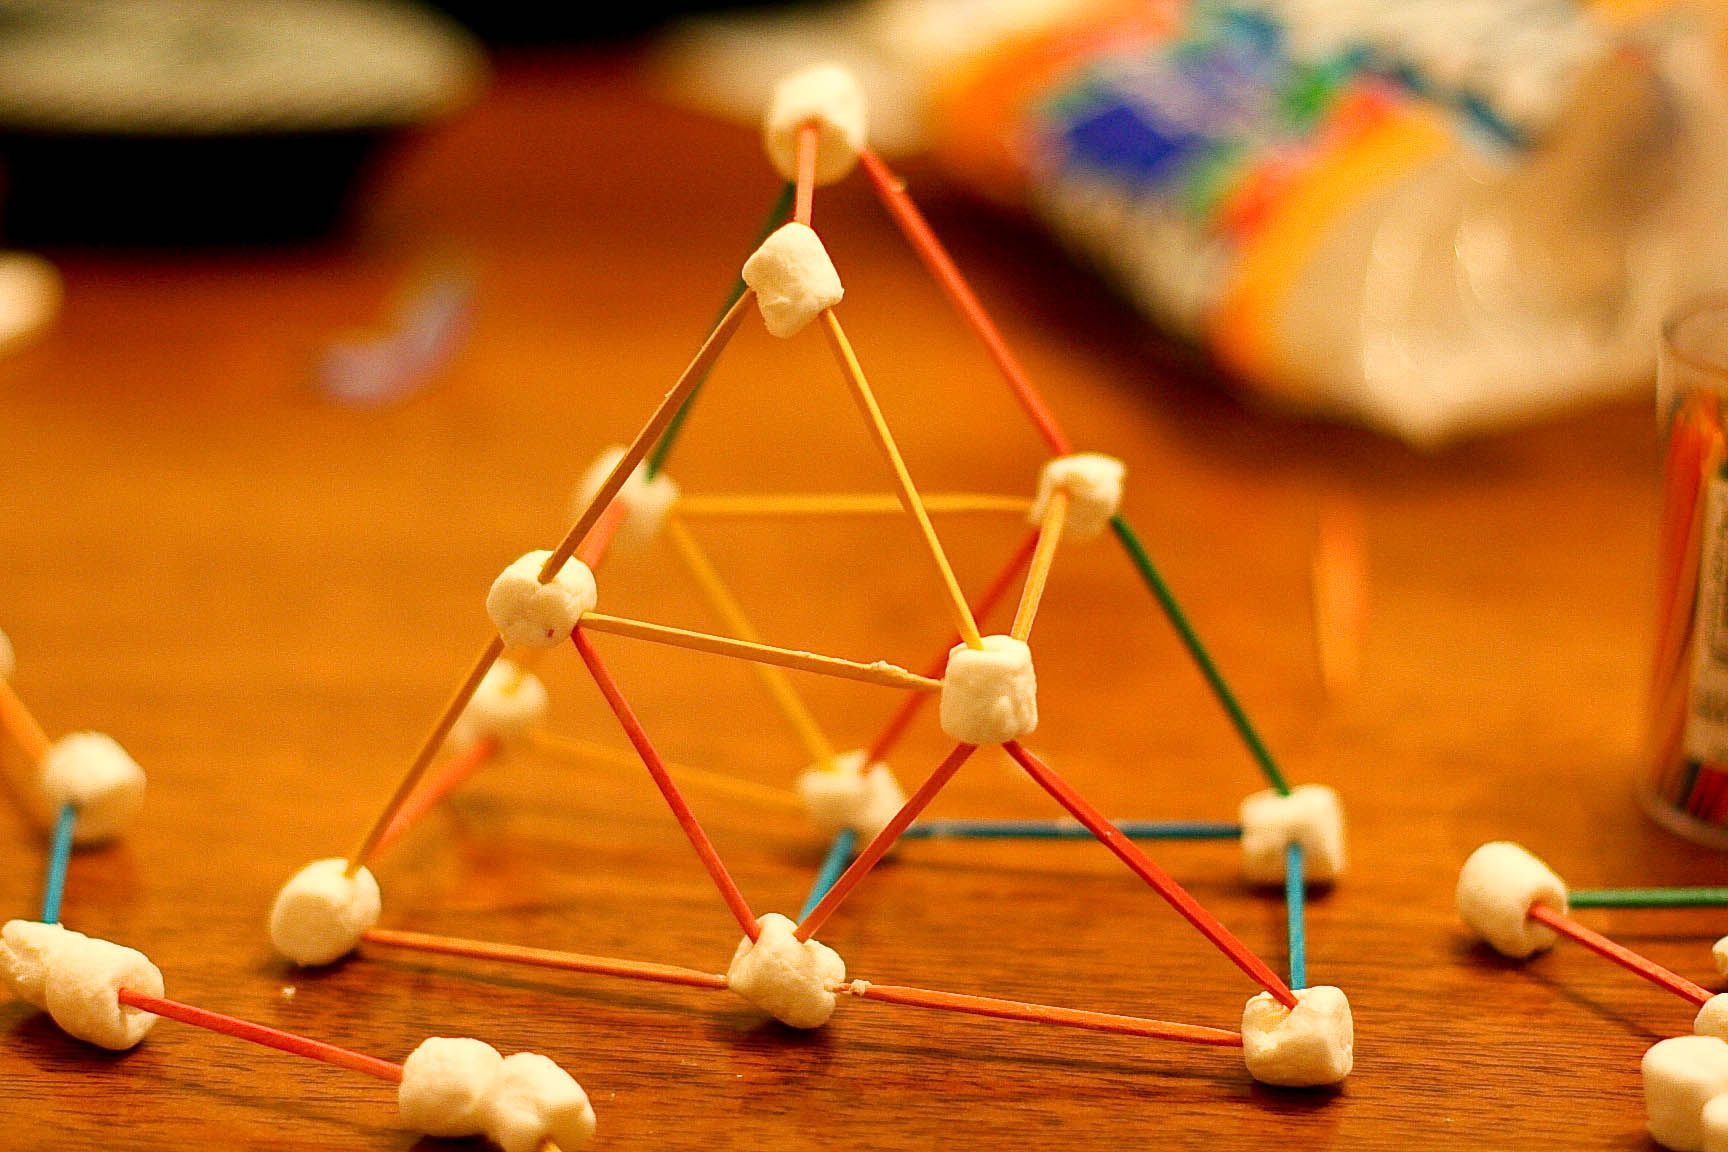 Building Toothpick And Marshmallow Structures While